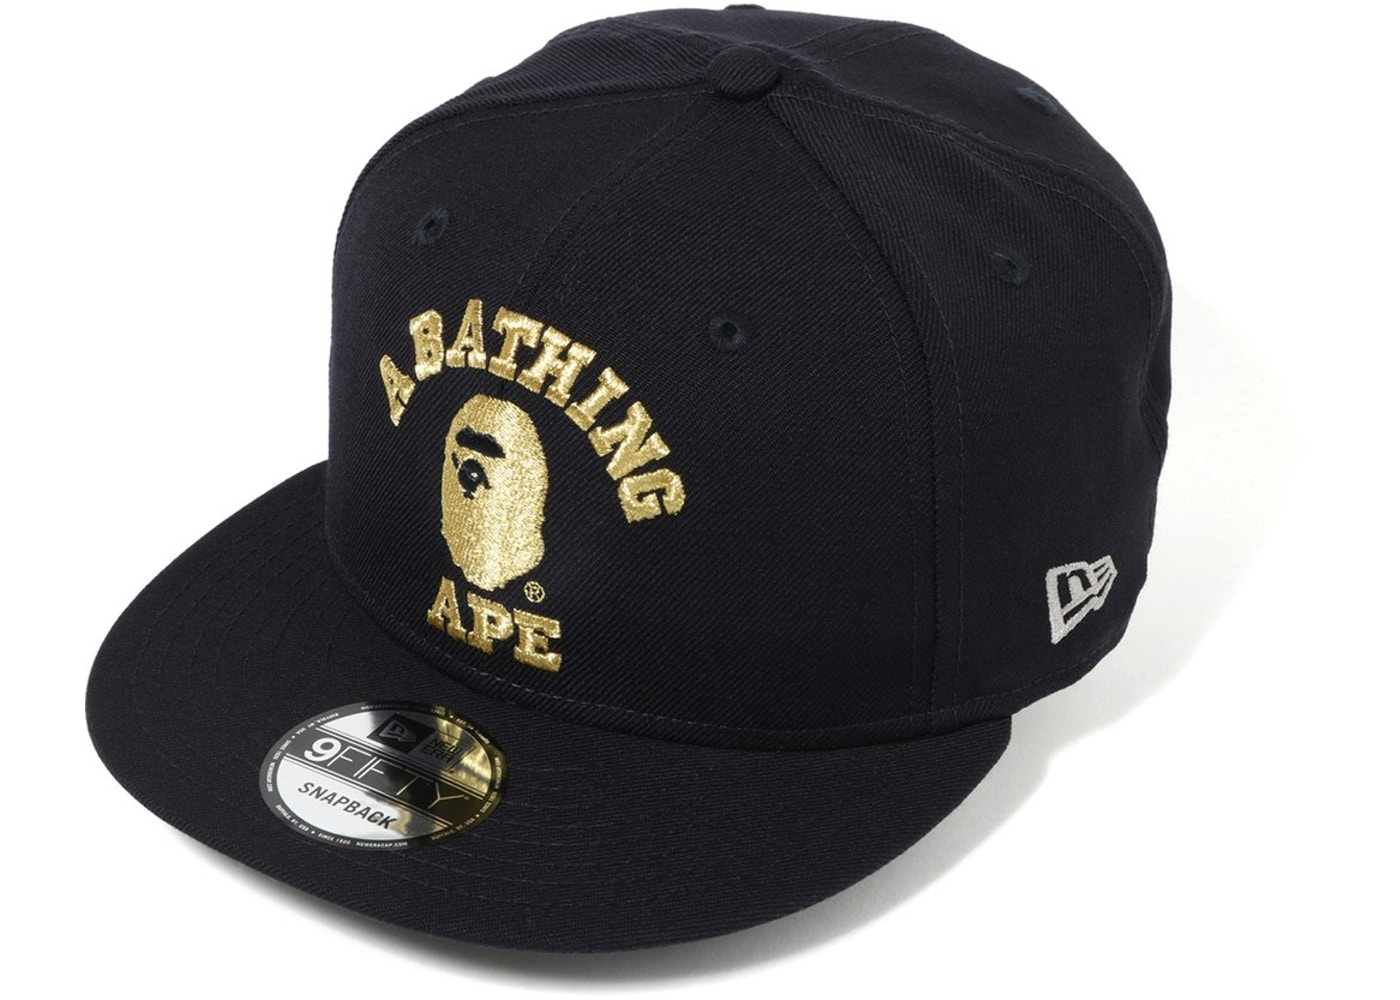 34964512e Streetwear - Bape Headwear - Highest Bid